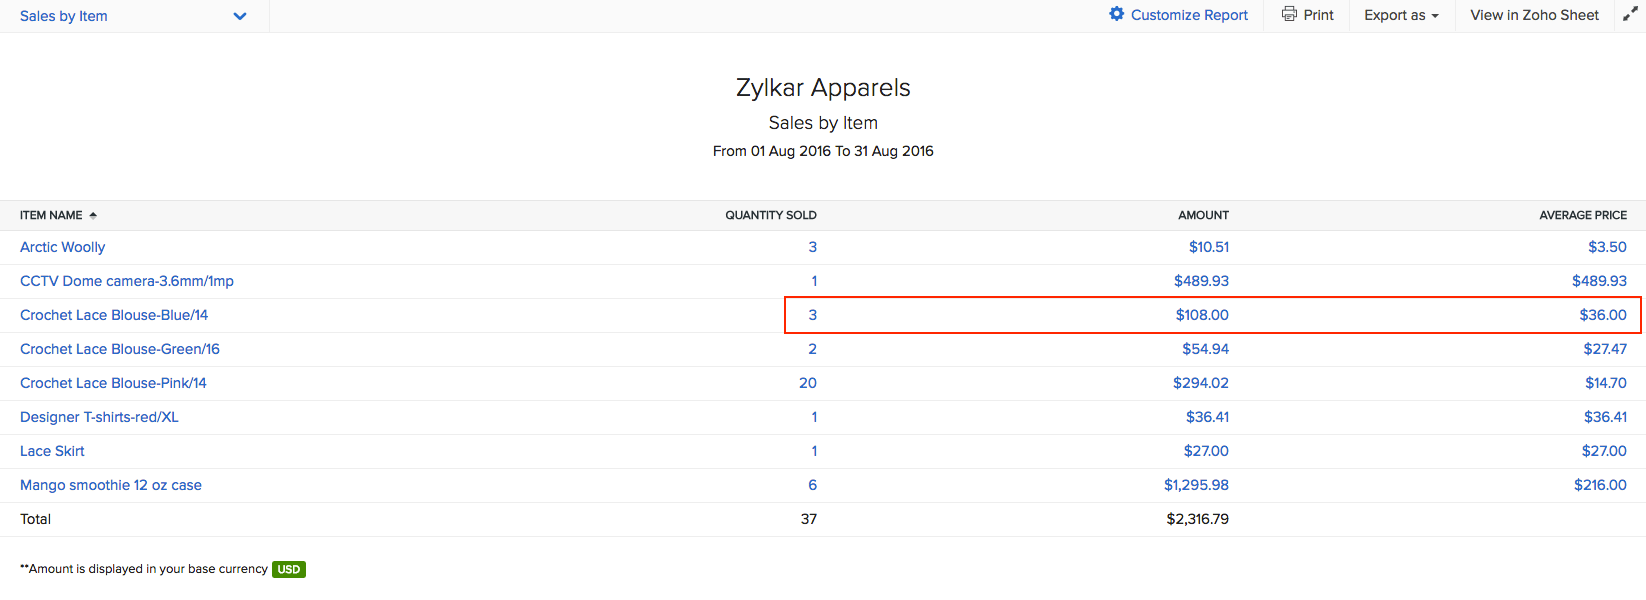 Links inside the sales by item report